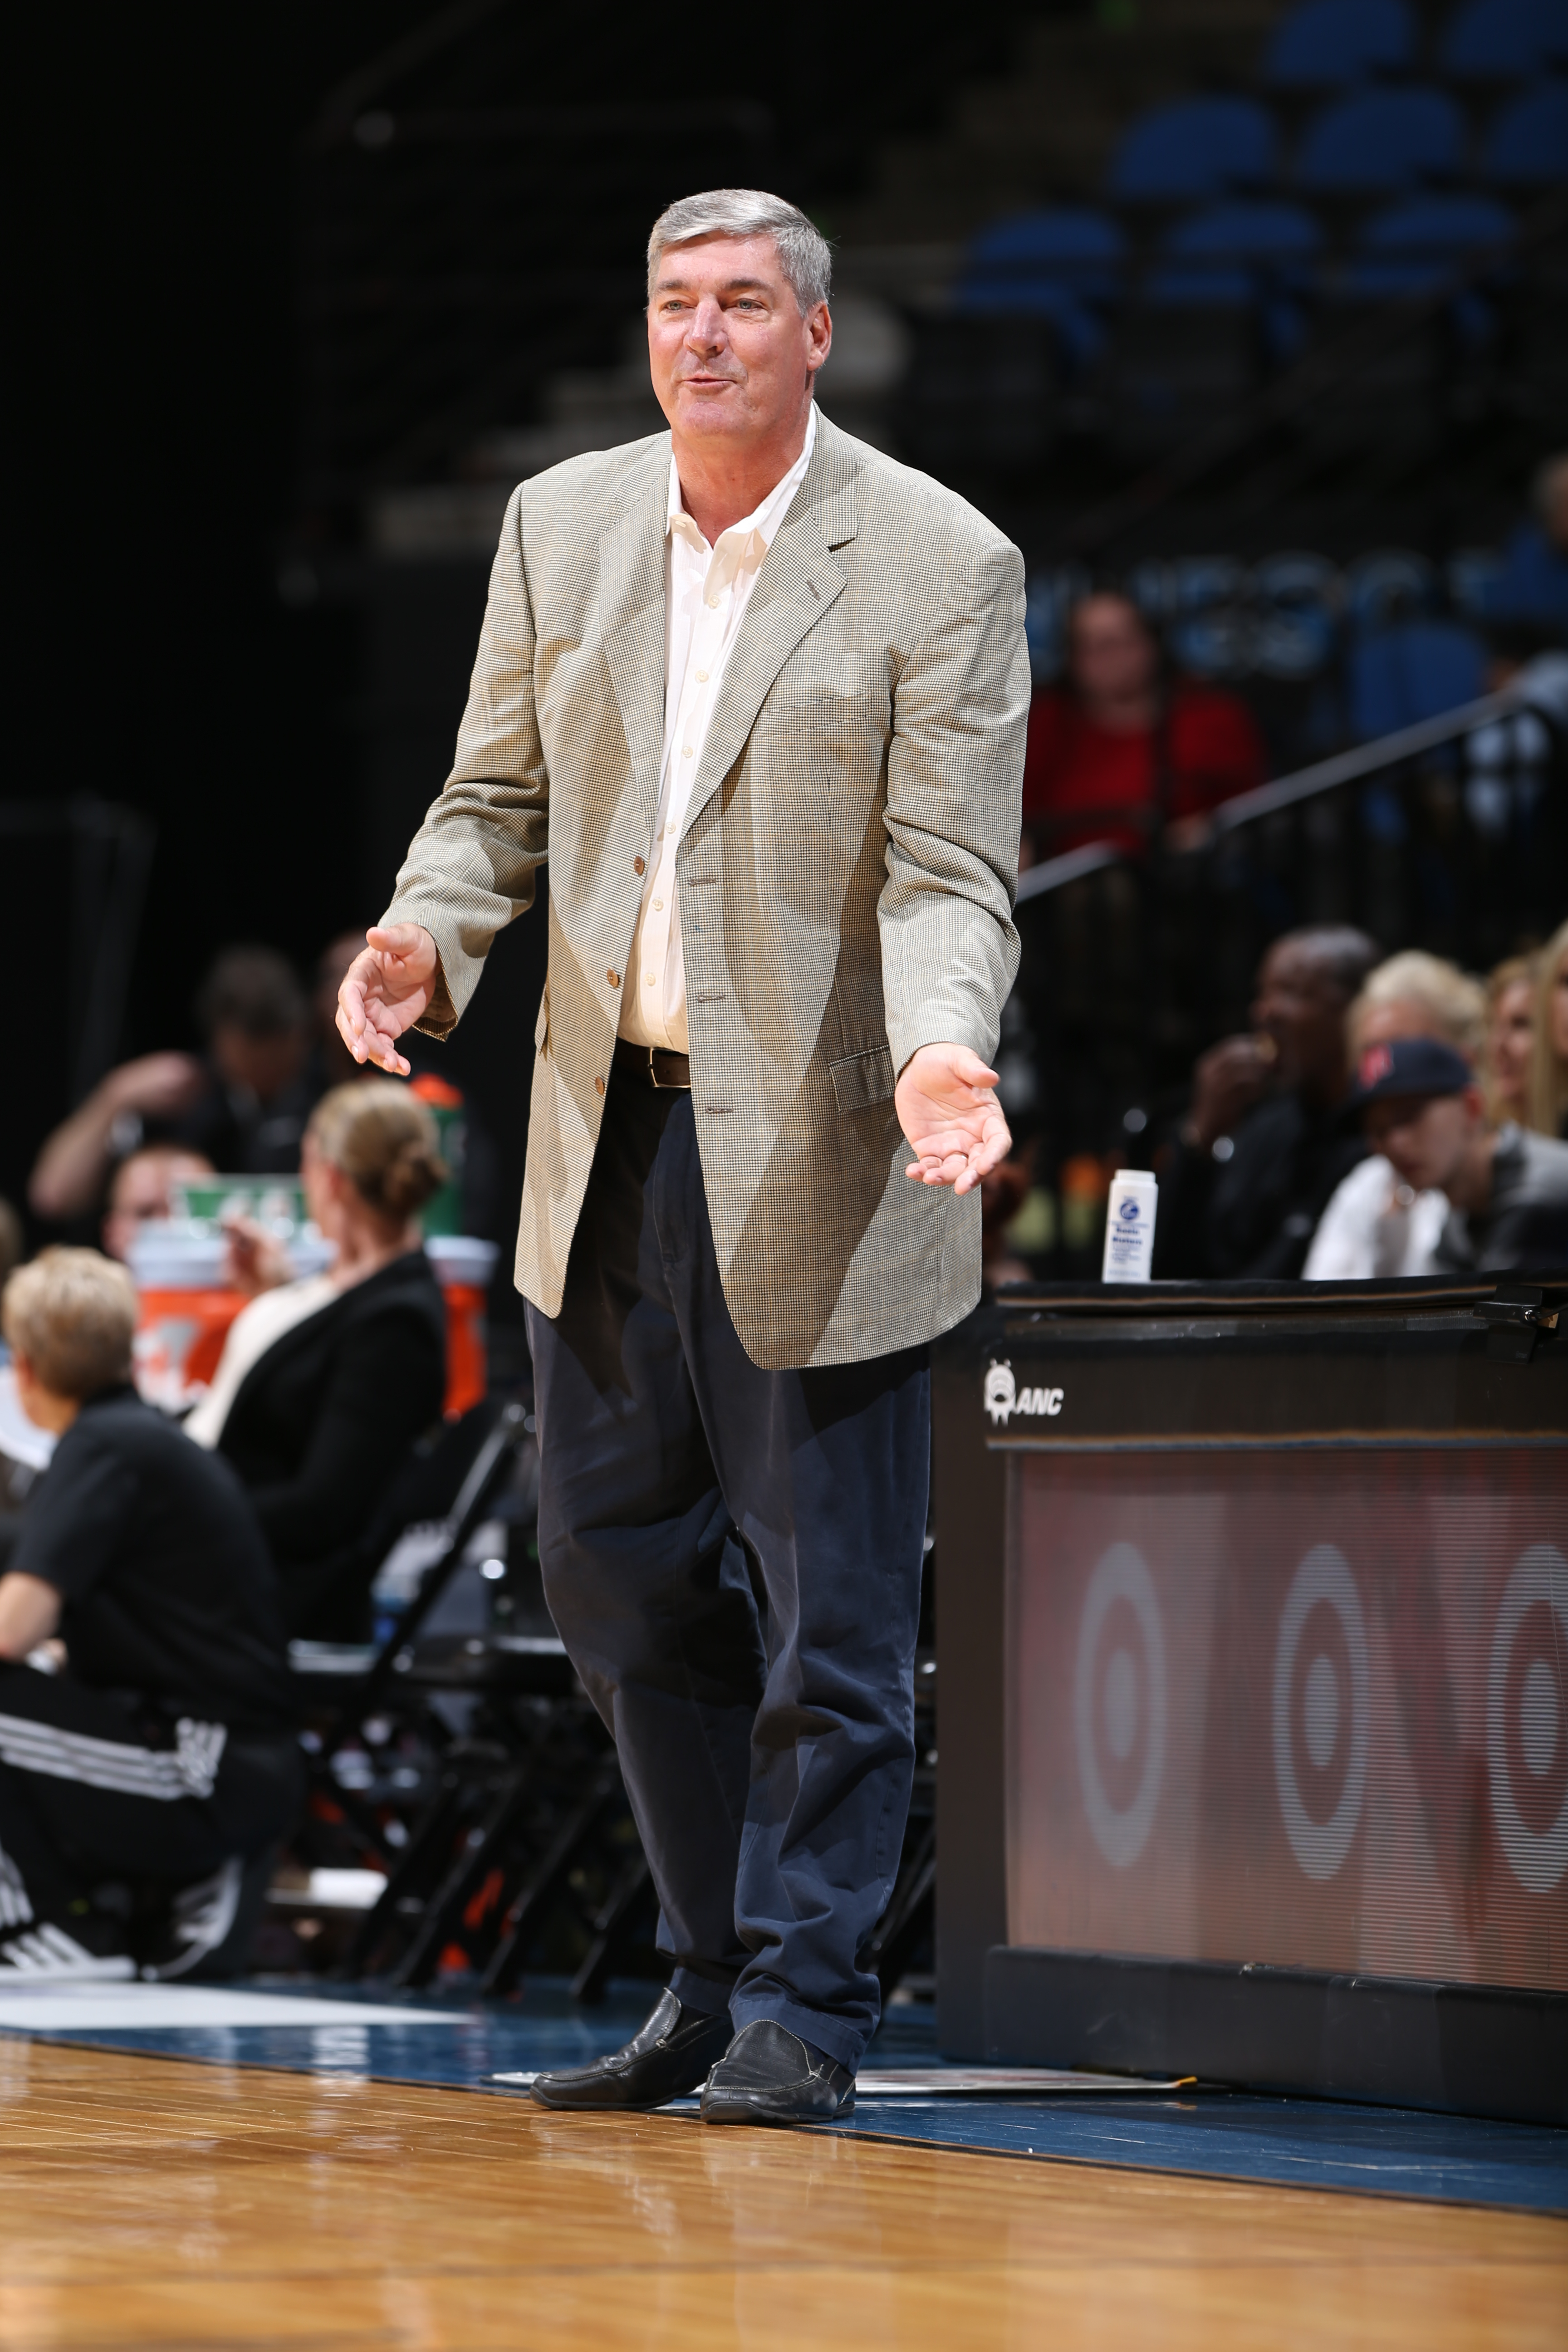 MINNEAPOLIS, MN - JUNE 1:  Head Coach Bill Laimbeer of the New York Liberty looks on against the Minnesota Lynx on June 1, 2015 at Target Center in Minneapolis, Minnesota. NOTE TO USER: User expressly acknowledges and agrees that, by downloading and or using this Photograph, user is consenting to the terms and conditions of the Getty Images License Agreement. Mandatory Copyright Notice: Copyright 2015 NBAE (Photo by David Sherman/NBAE via Getty Images)